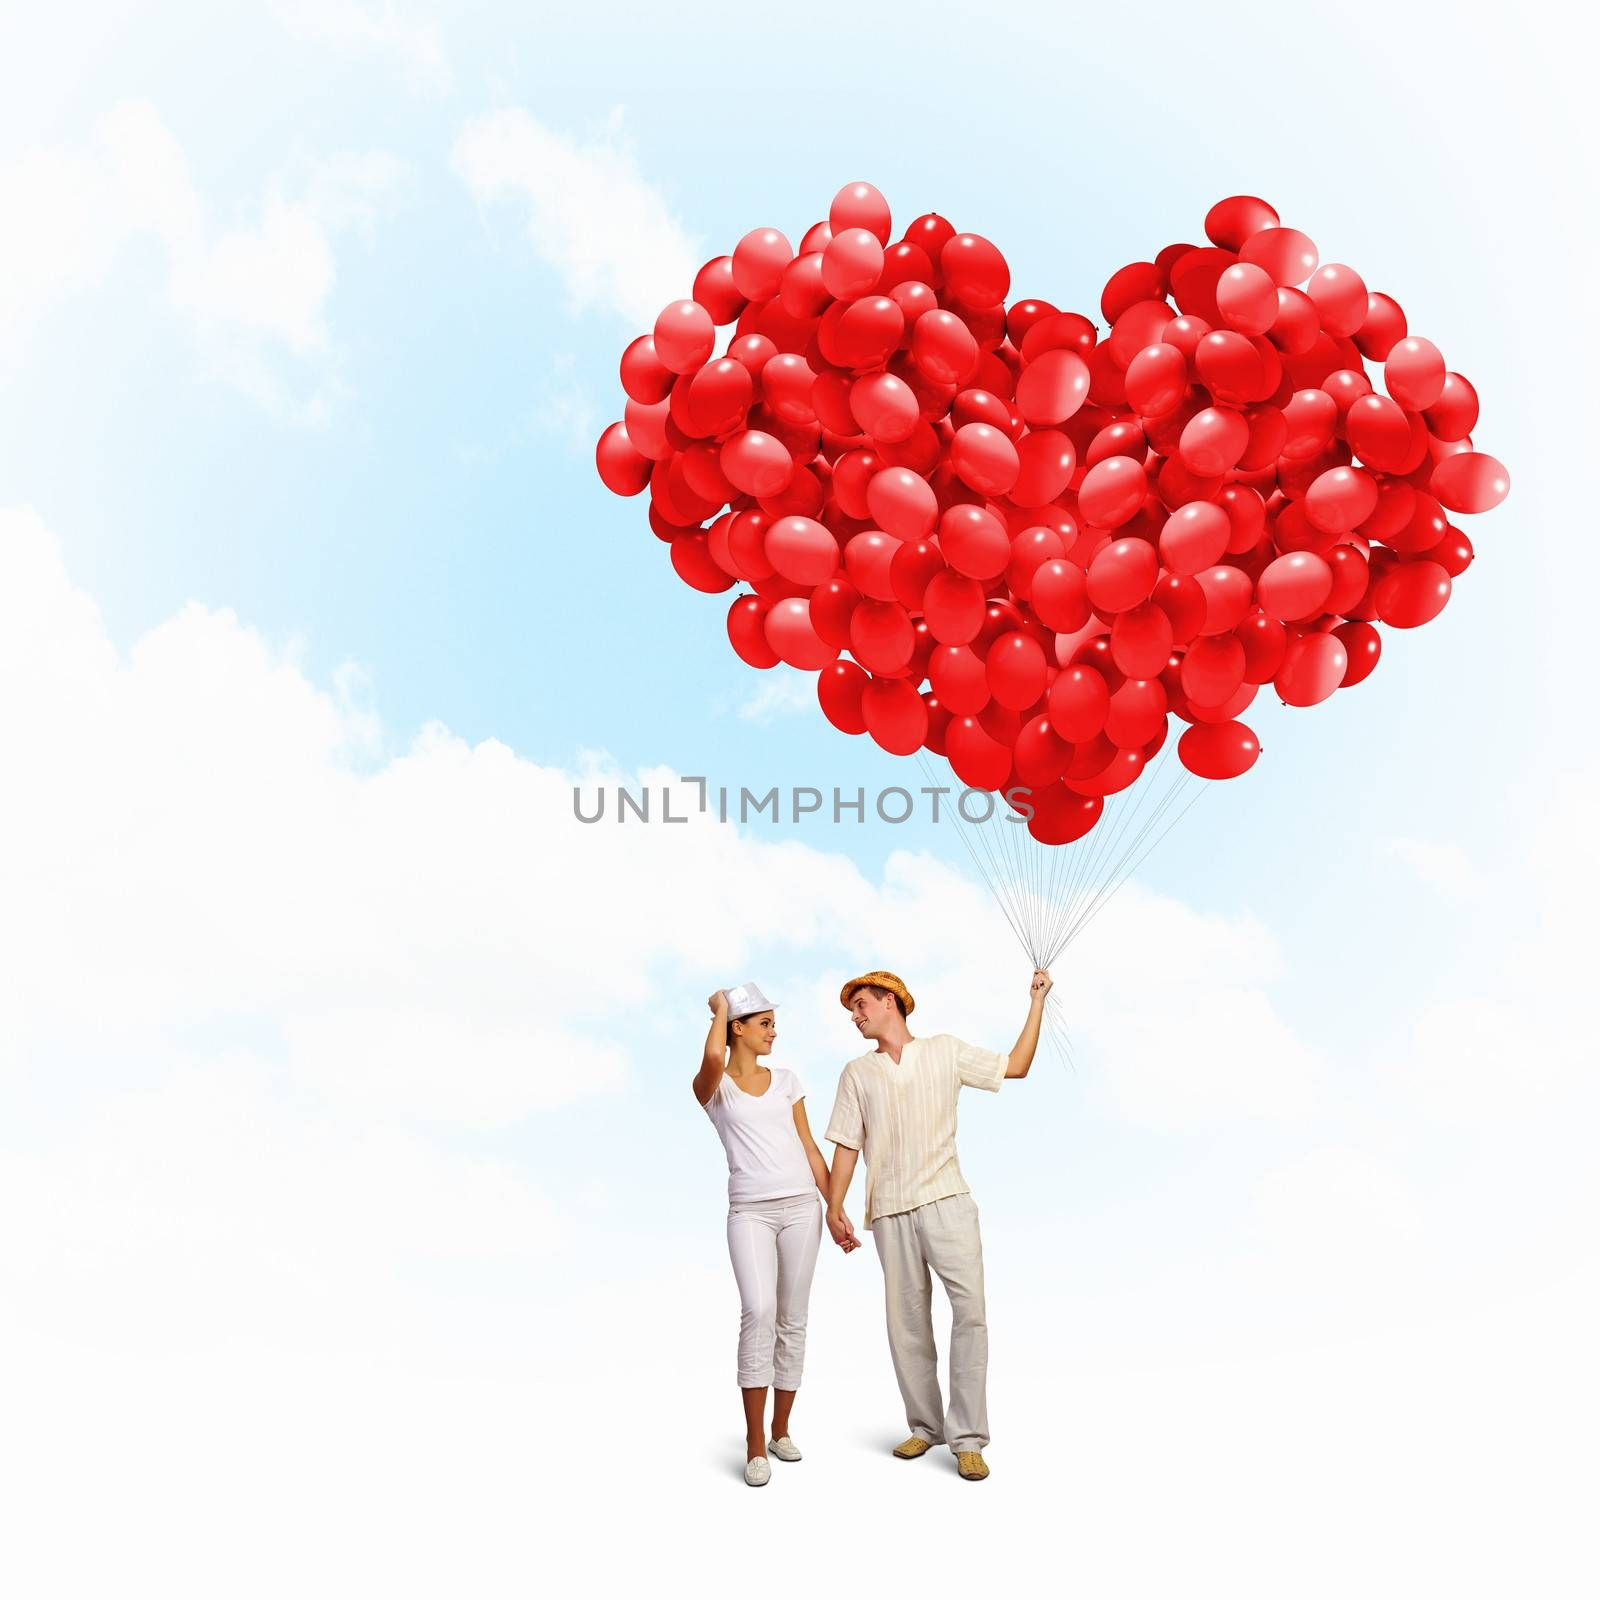 Image of young happy family with bunch of balloons